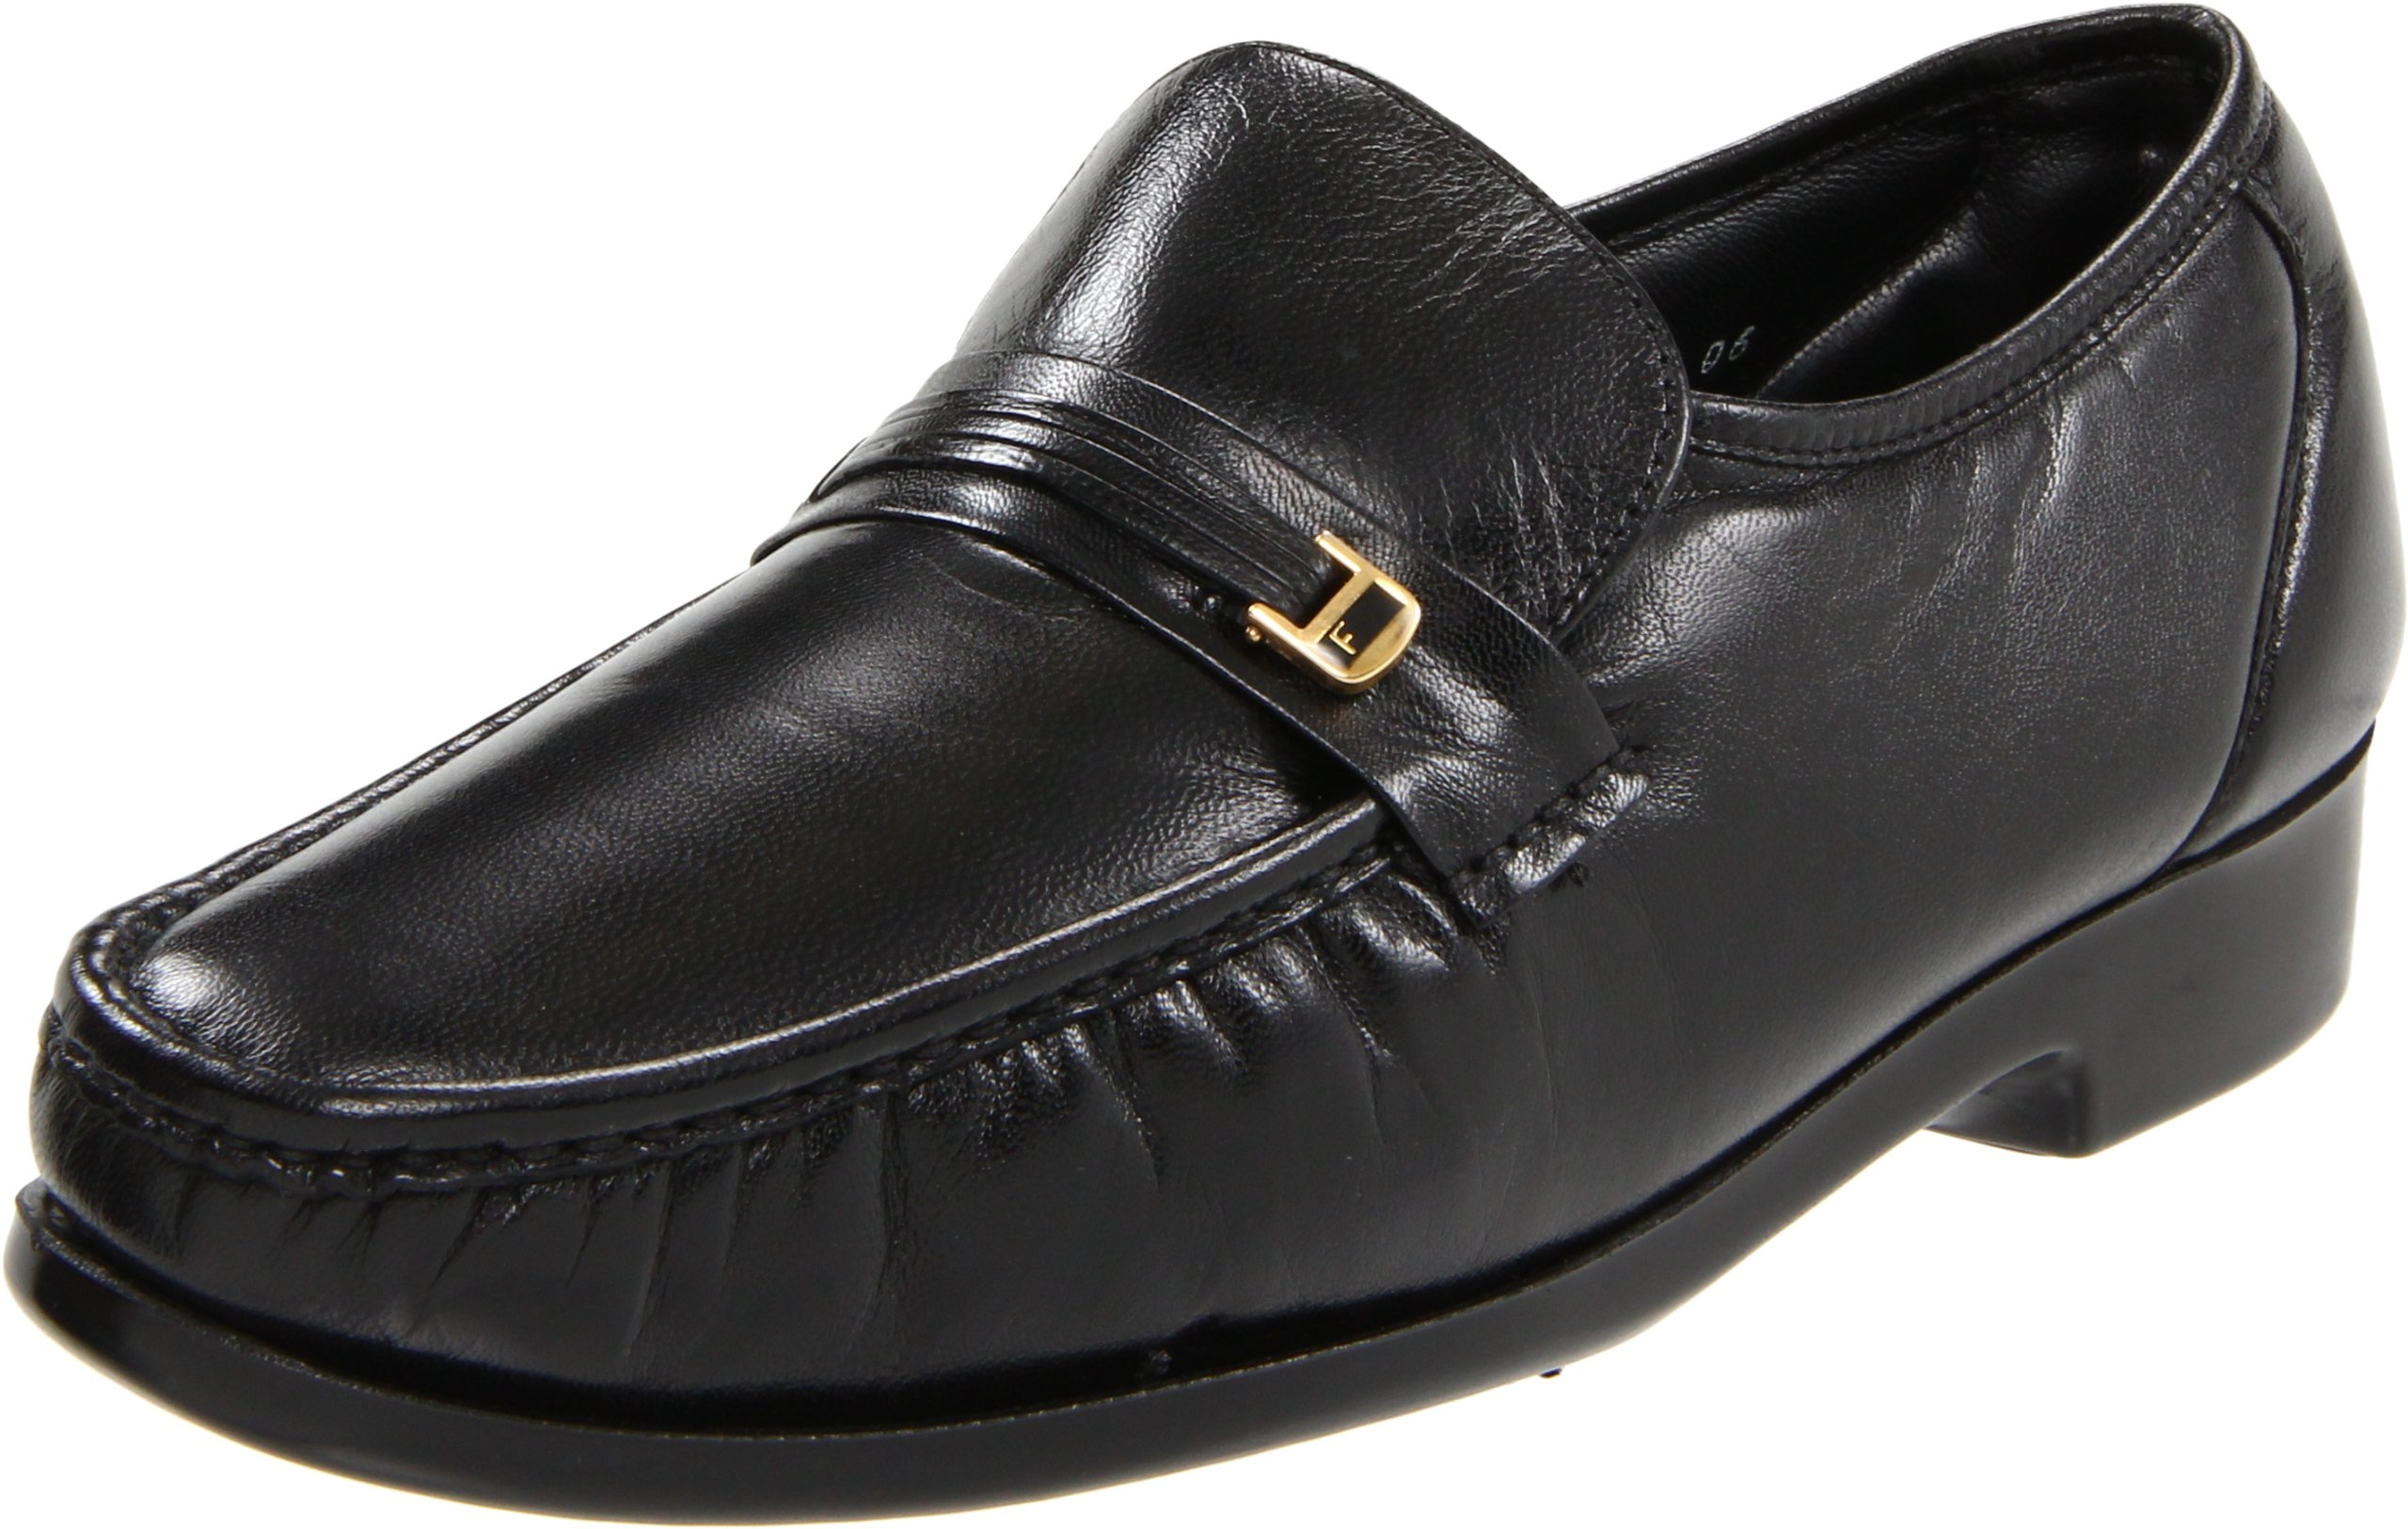 Florsheim Men's Riva Black Nappa Kid Loafer 9 E by Florsheim